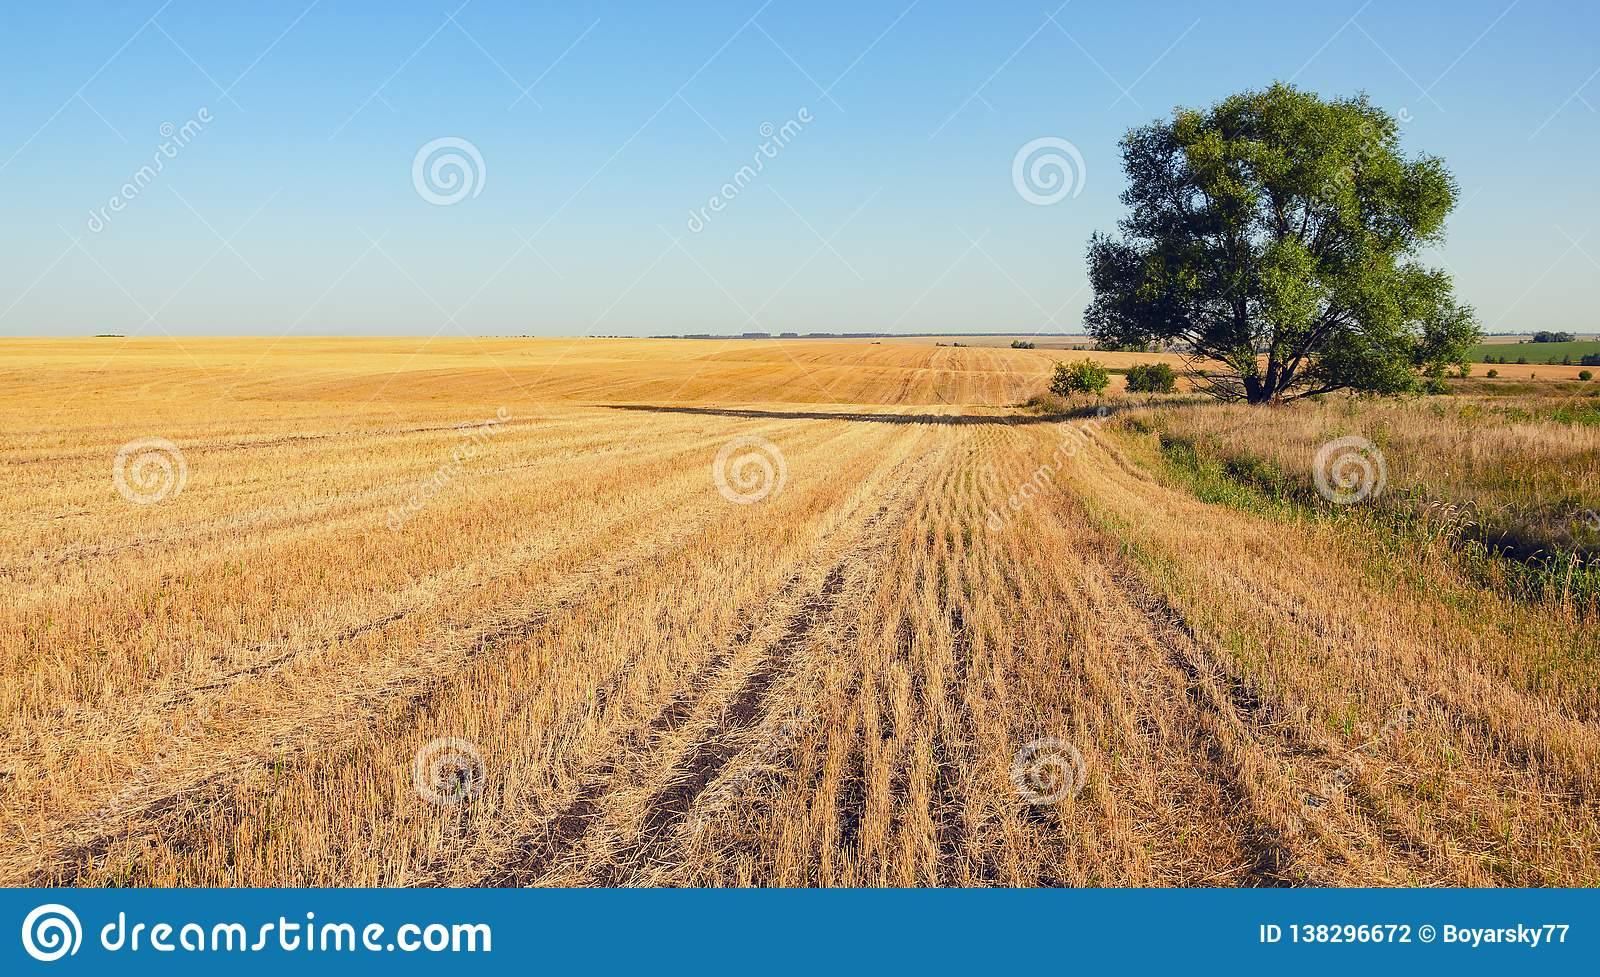 Sunny Summer Scene With Empty Rural Field After Harvesting A